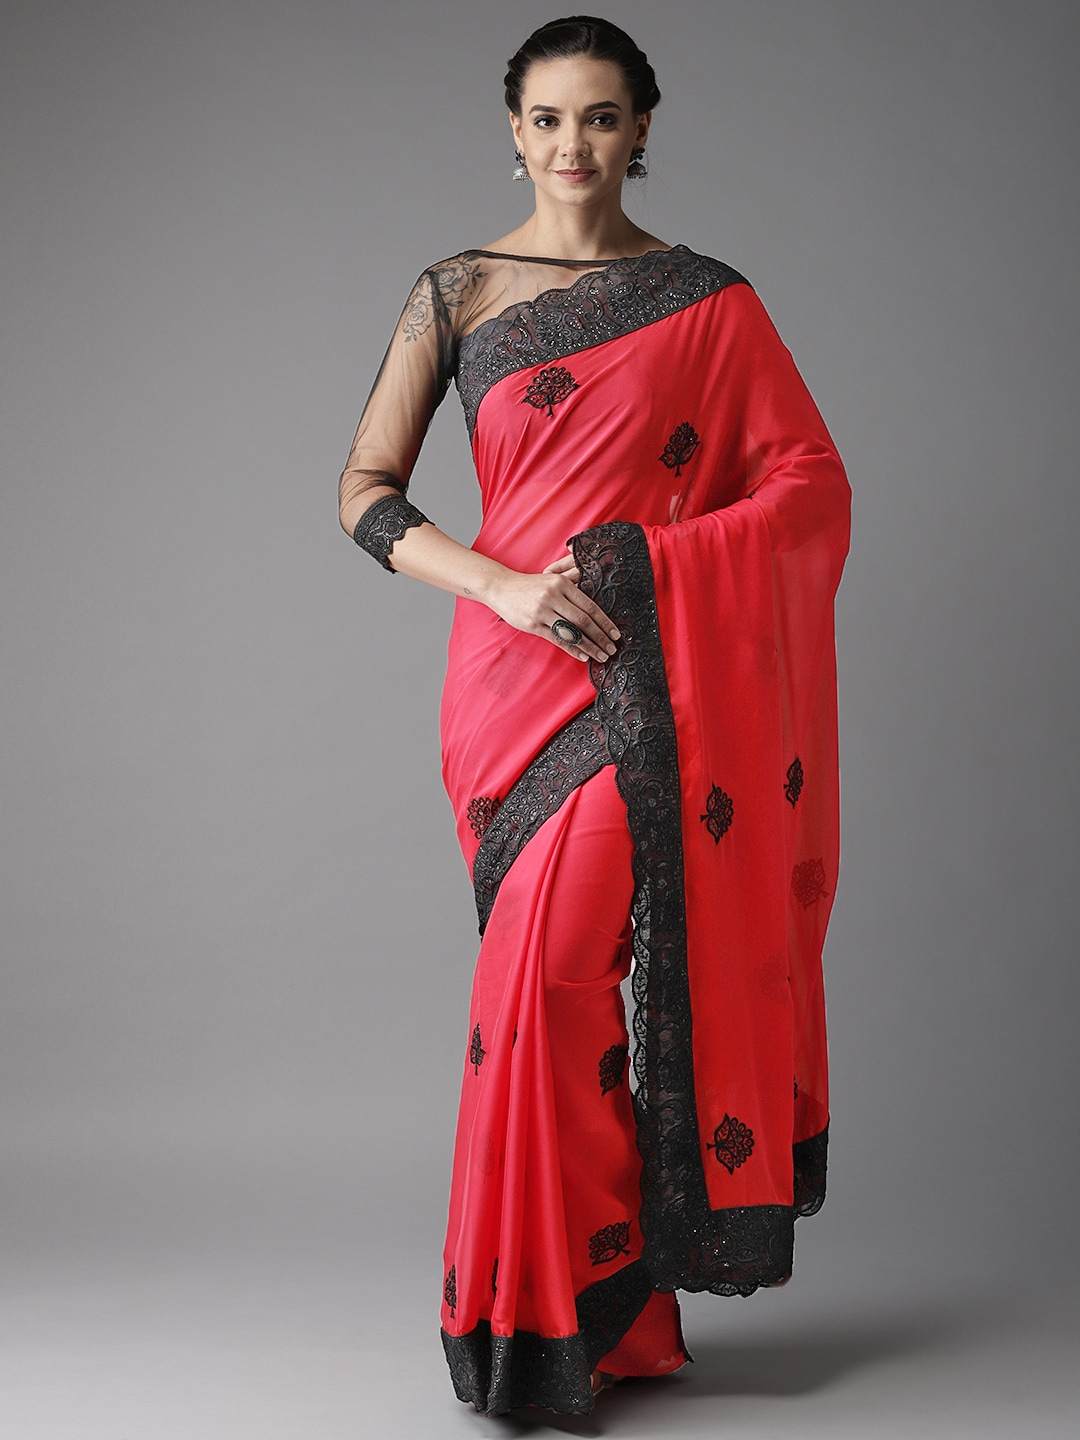 8e184a725d Vishal Embroidered Sarees - Buy Vishal Embroidered Sarees online in India